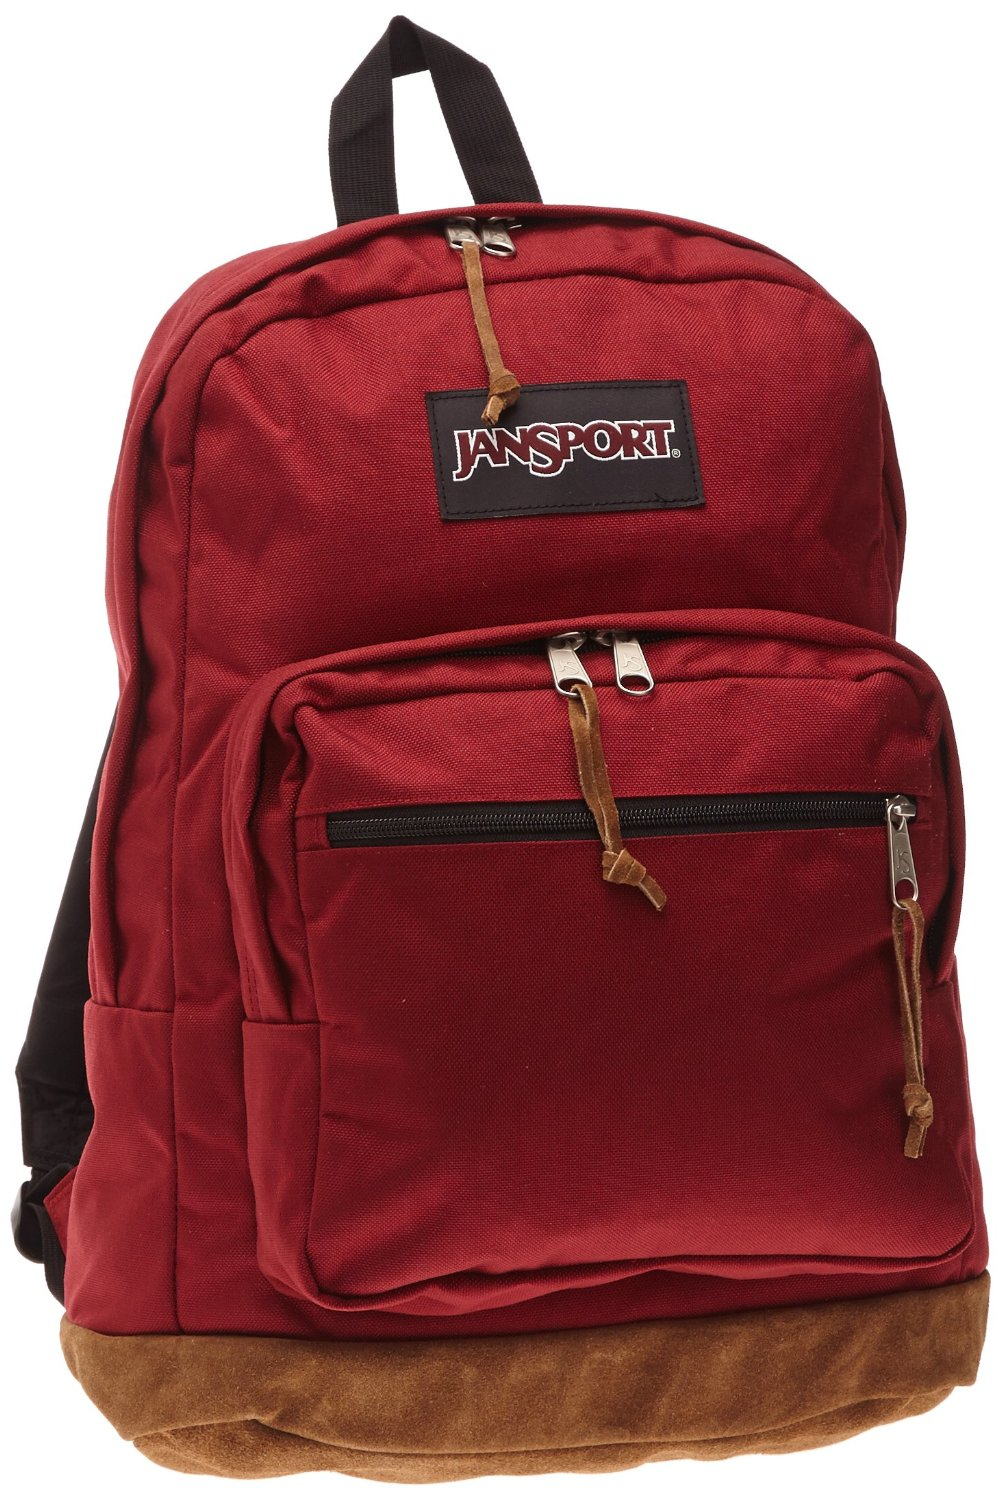 How Much Does Jansport Backpacks Cost - Crazy Backpacks